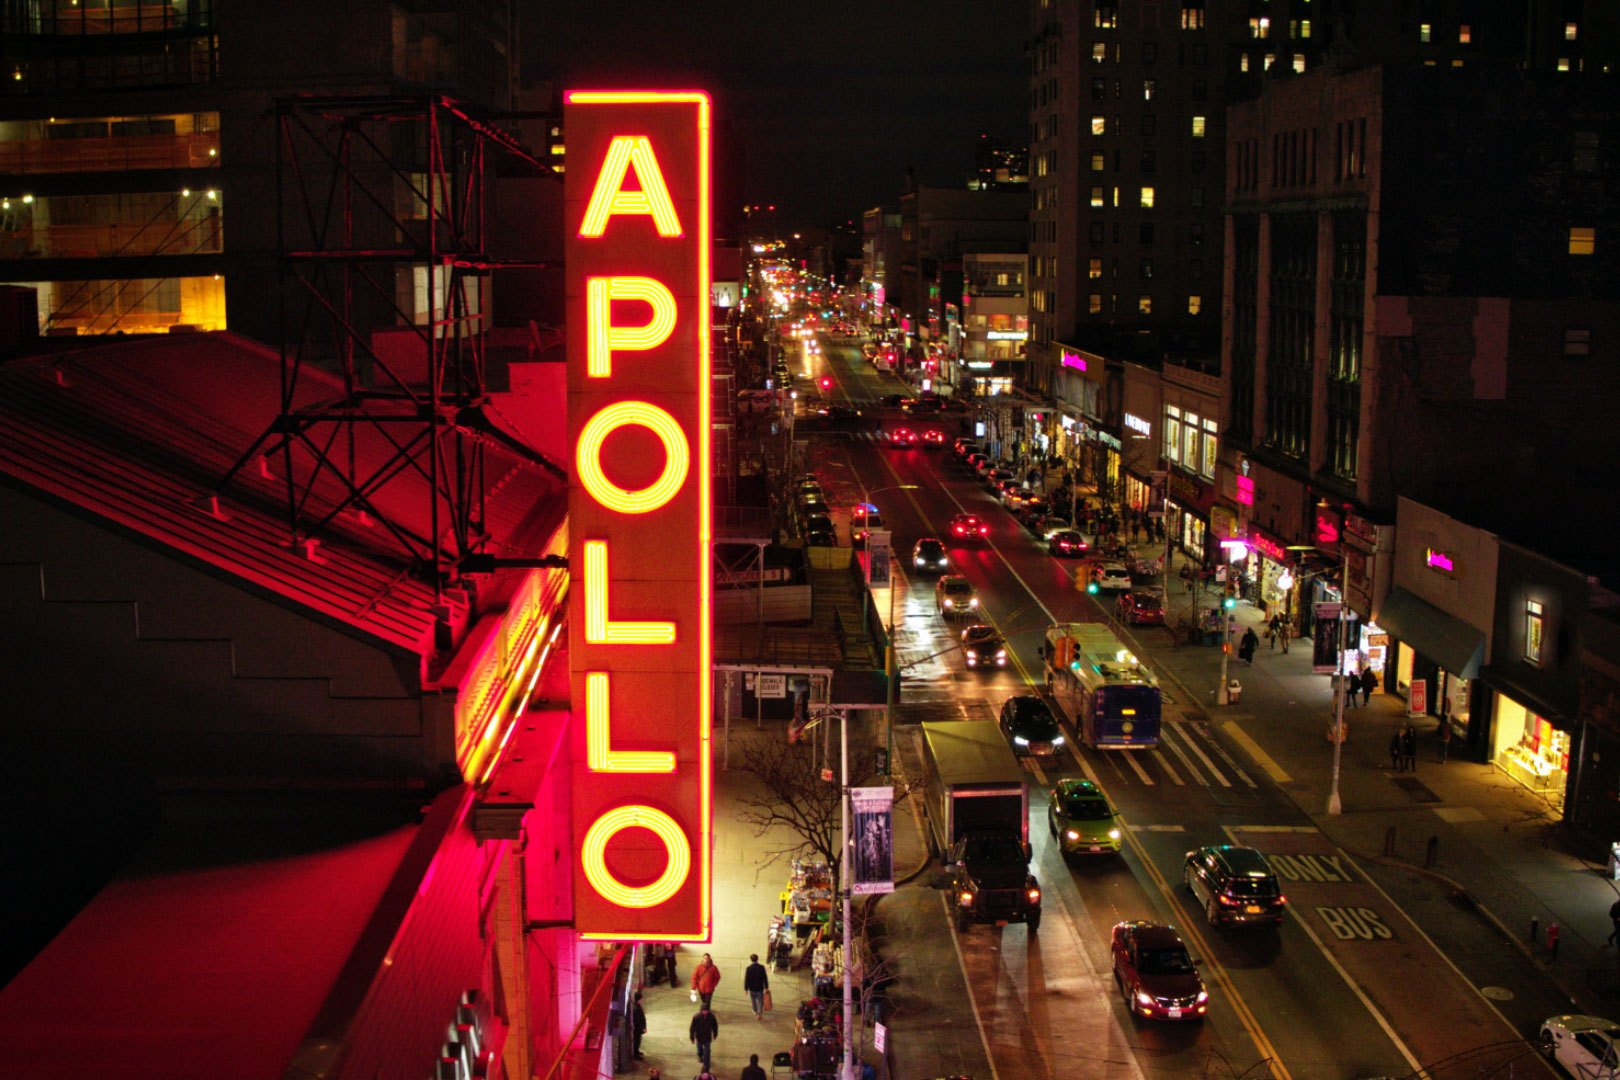 'The Apollo' Doc About Harlem Theater to Premiere at Tribeca Film Fest